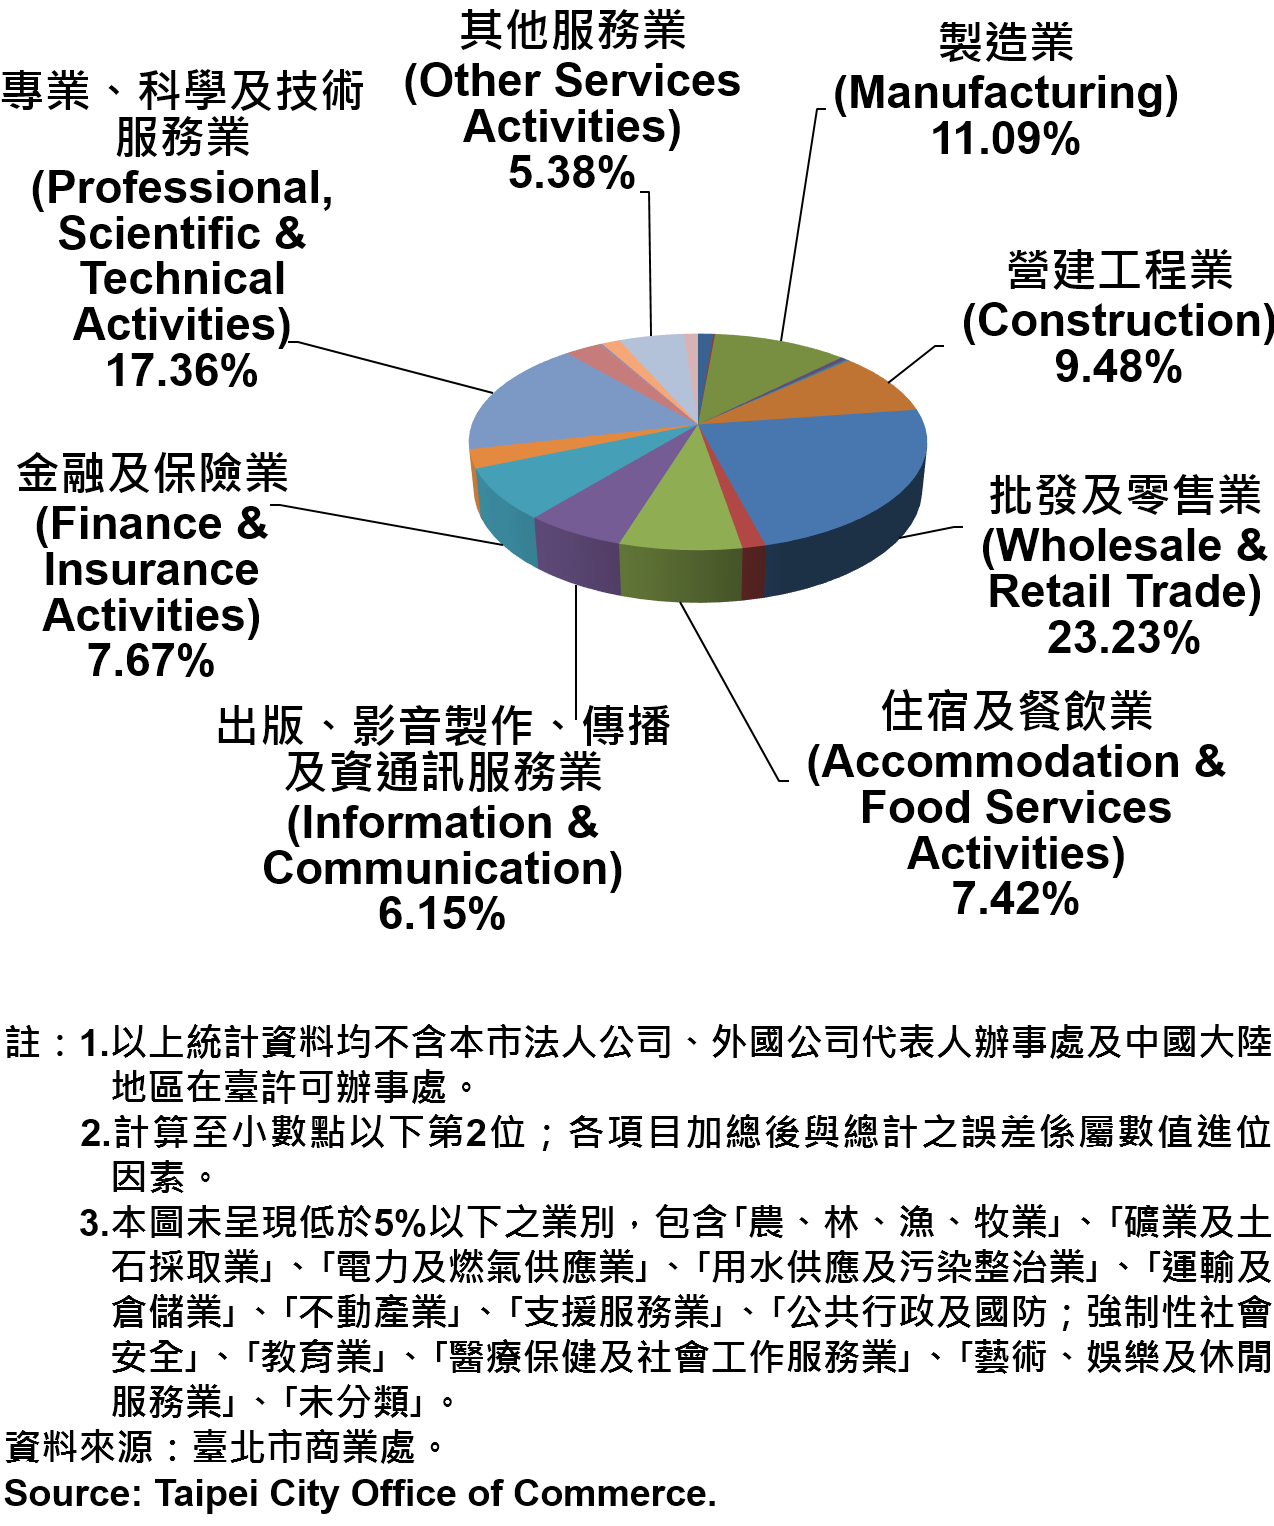 臺北市新創公司行號之業別分布情形—依現存家數—2018 Newly Registered Companies in Taipei City by Industry- Number of Current—2018